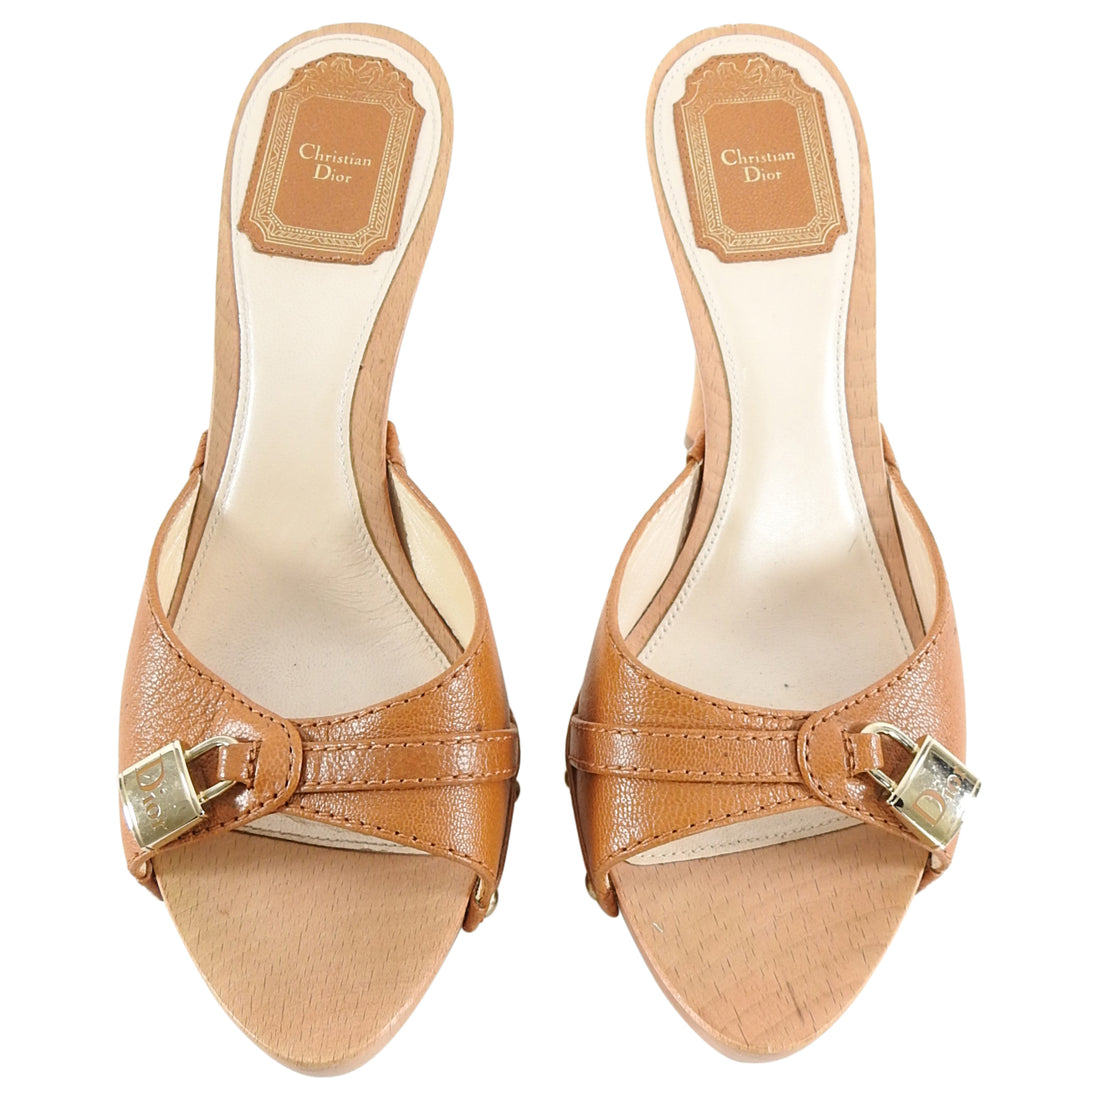 Christian Dior by Galliano Tan and Wood Lock Clog Sandals